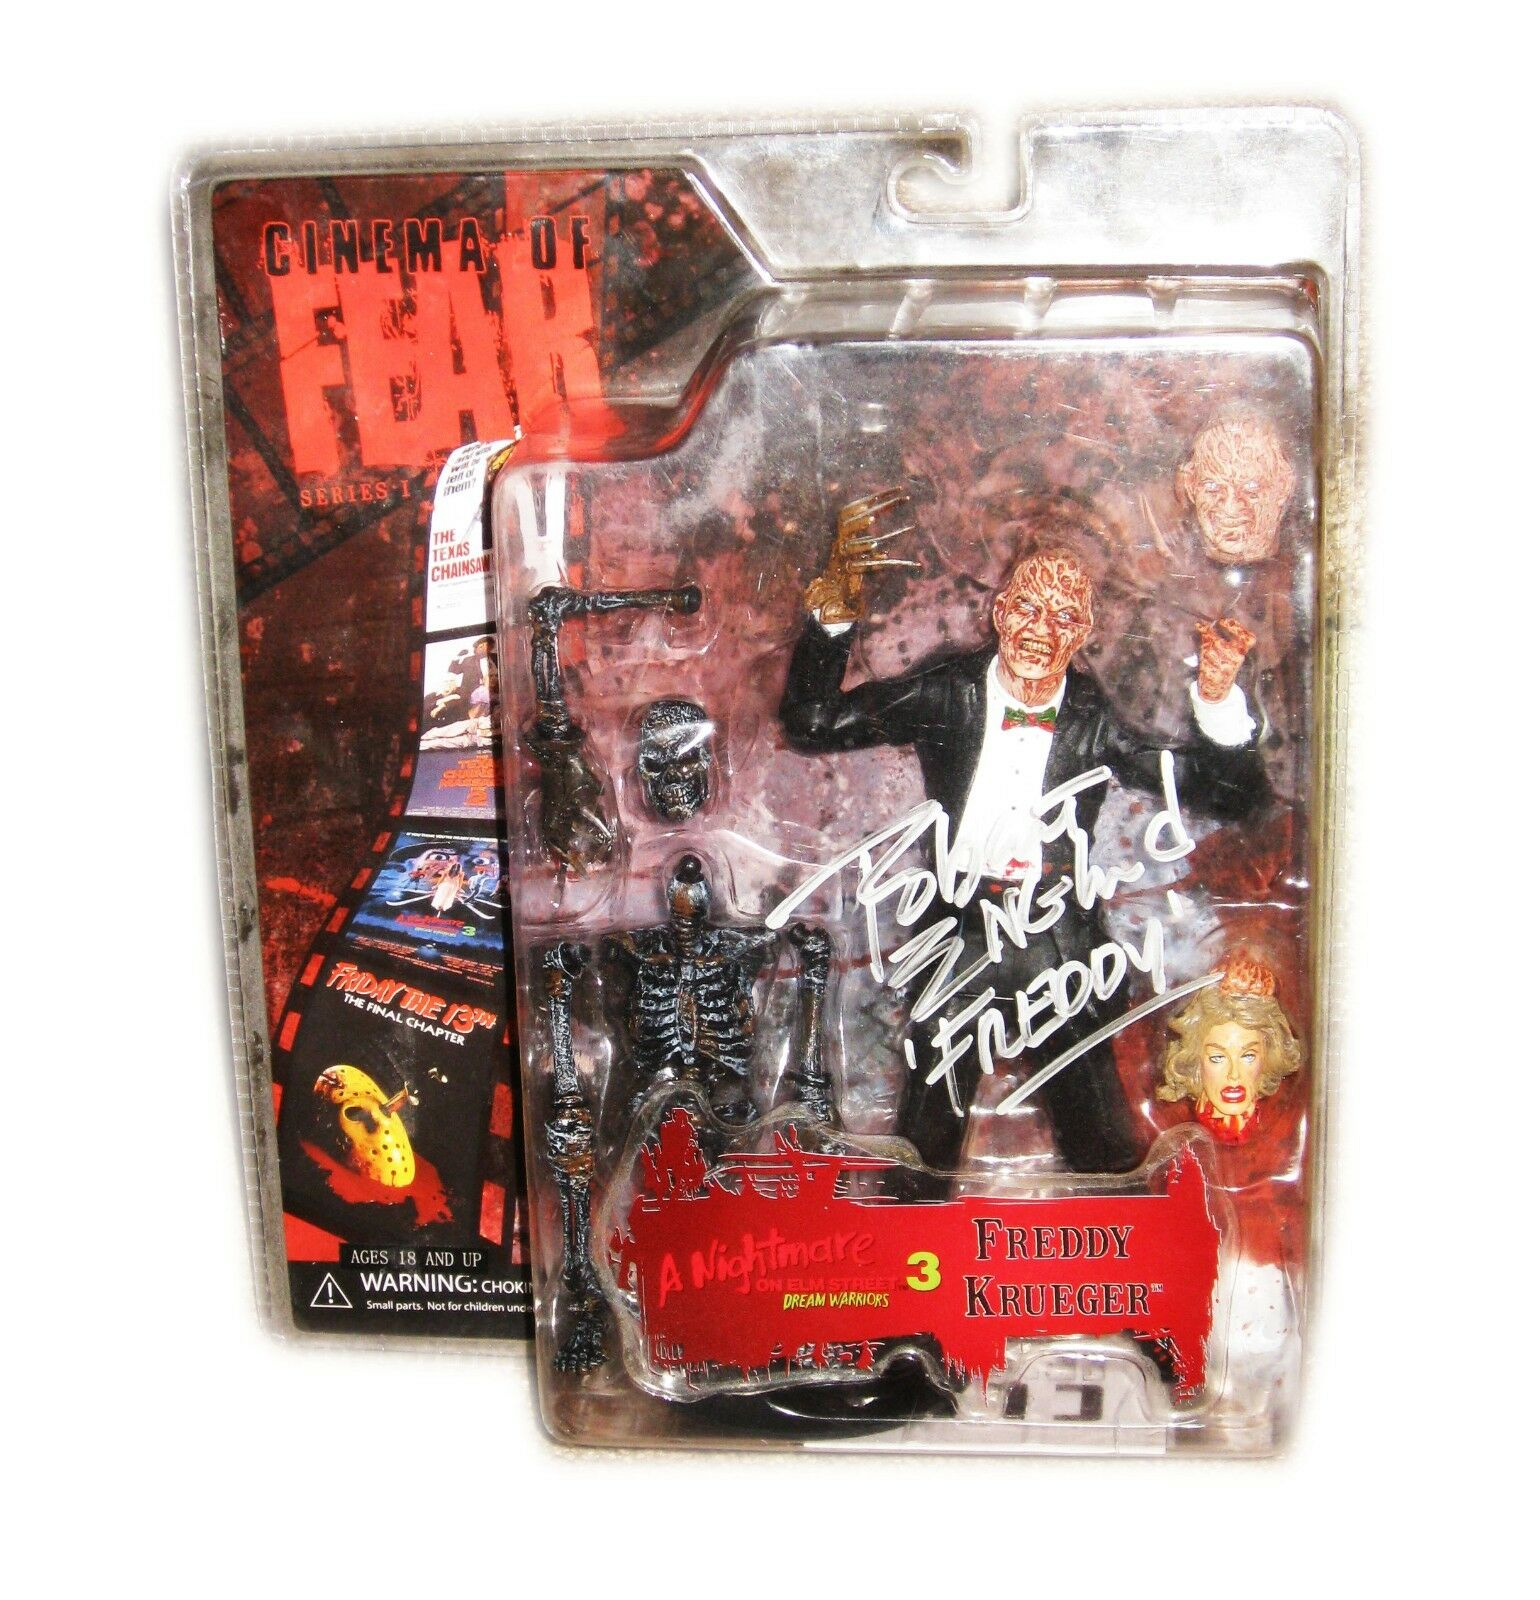 FrotDY KRUEGER CINEMA OF FEAR HAND SIGNED NIGHTMARE ON ELM STREET ACTION FIGURE